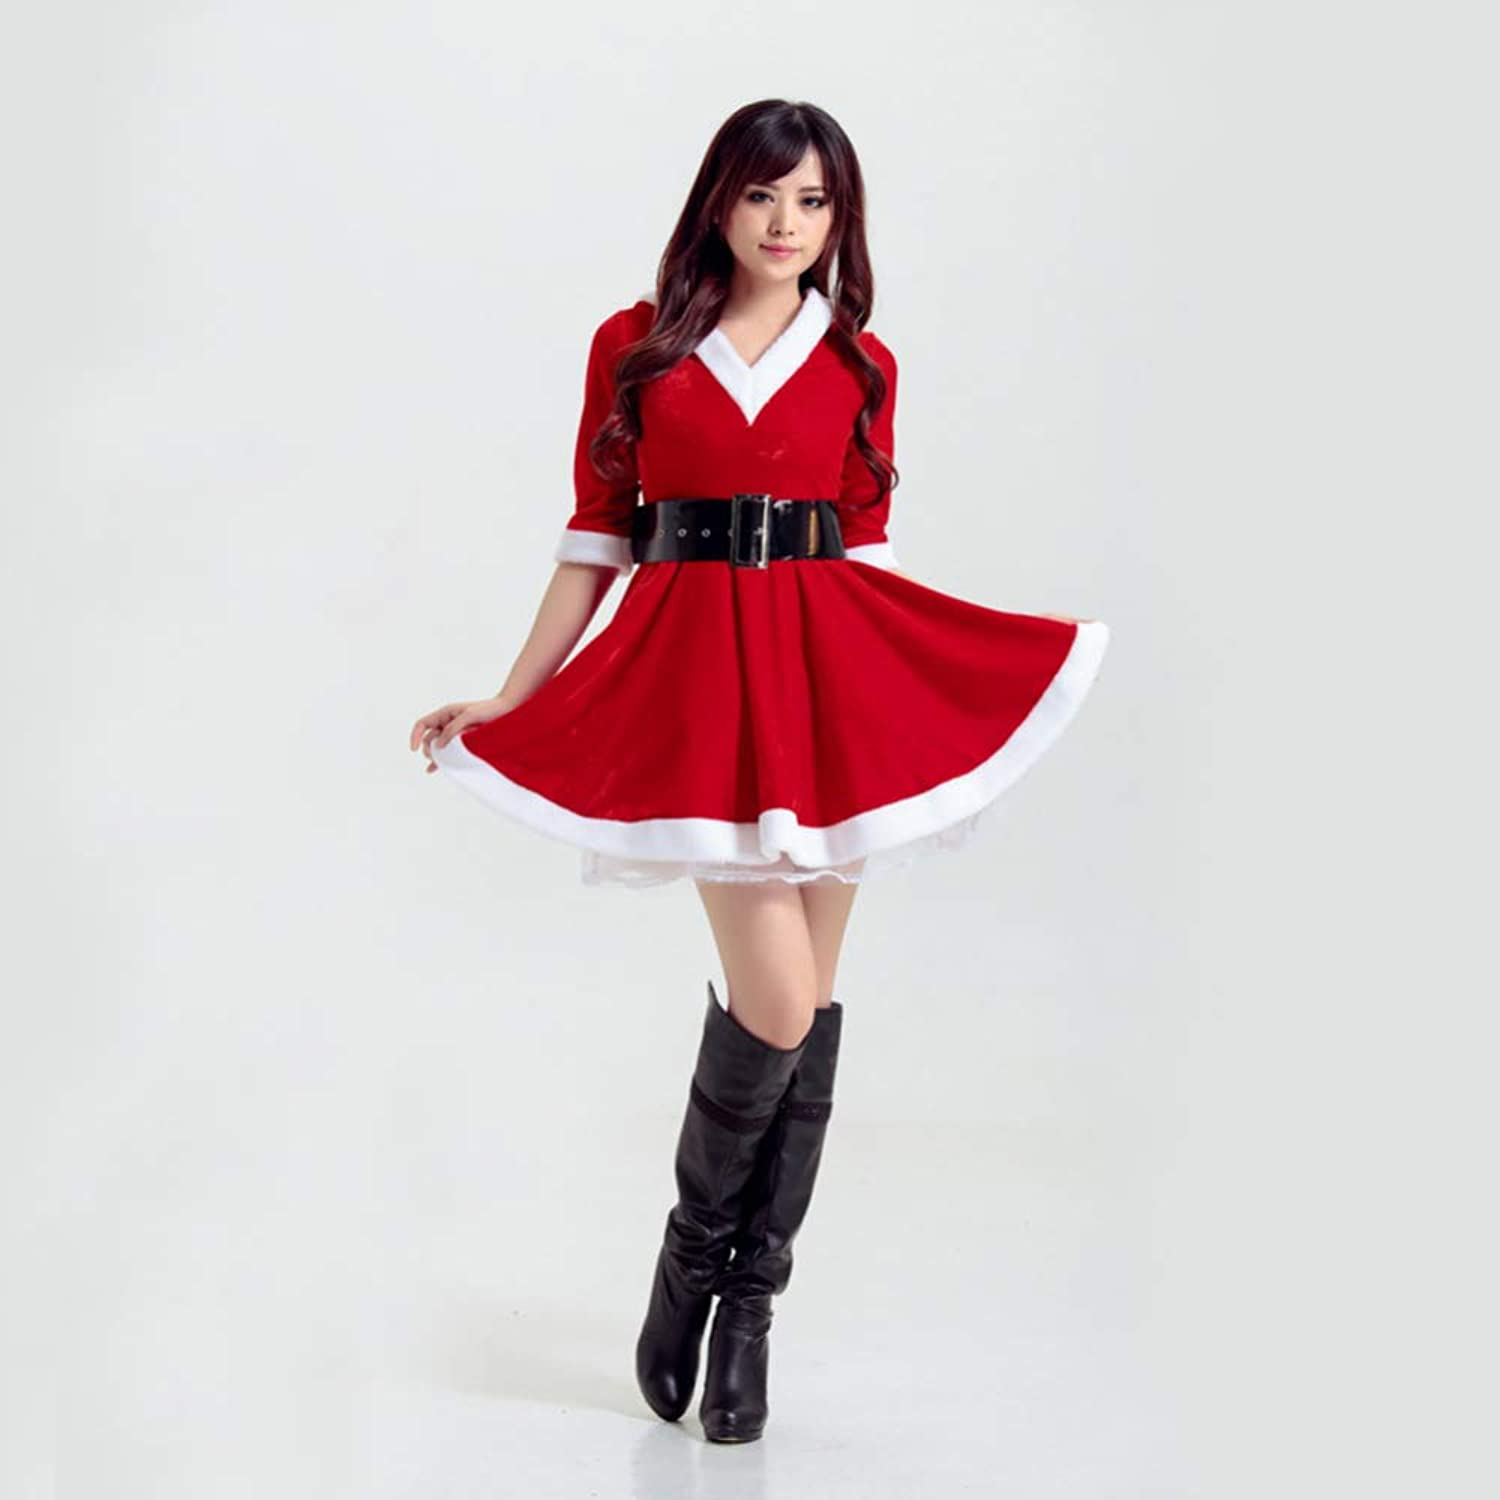 CVCCV 2018 New Red Christmas Costumes Girls Cos Performances Christmas Costumes Cotton Material